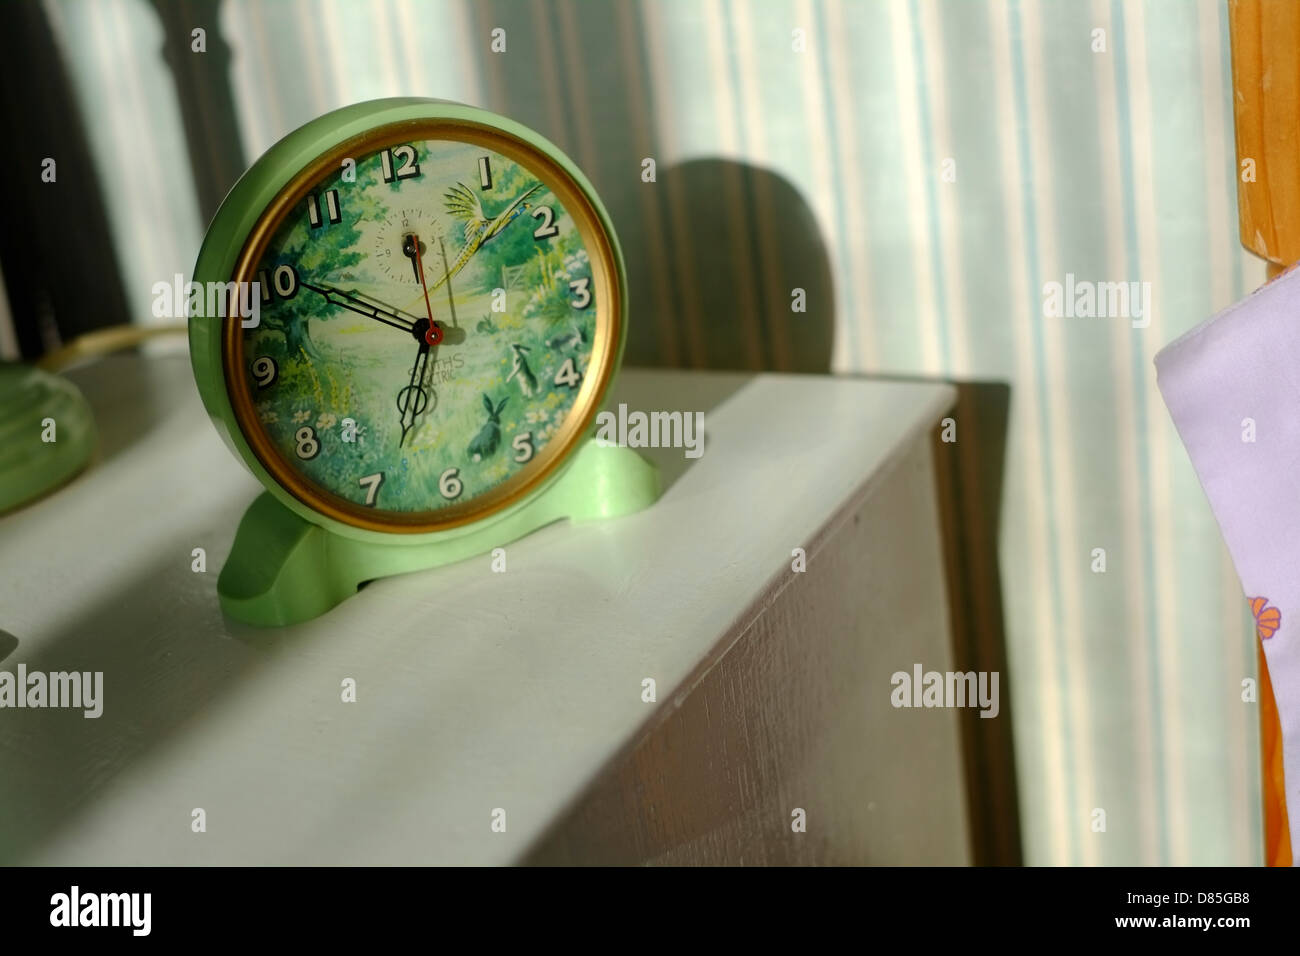 A vintage Smith Sectric alarm clock in the early morning sun. Stock Photo